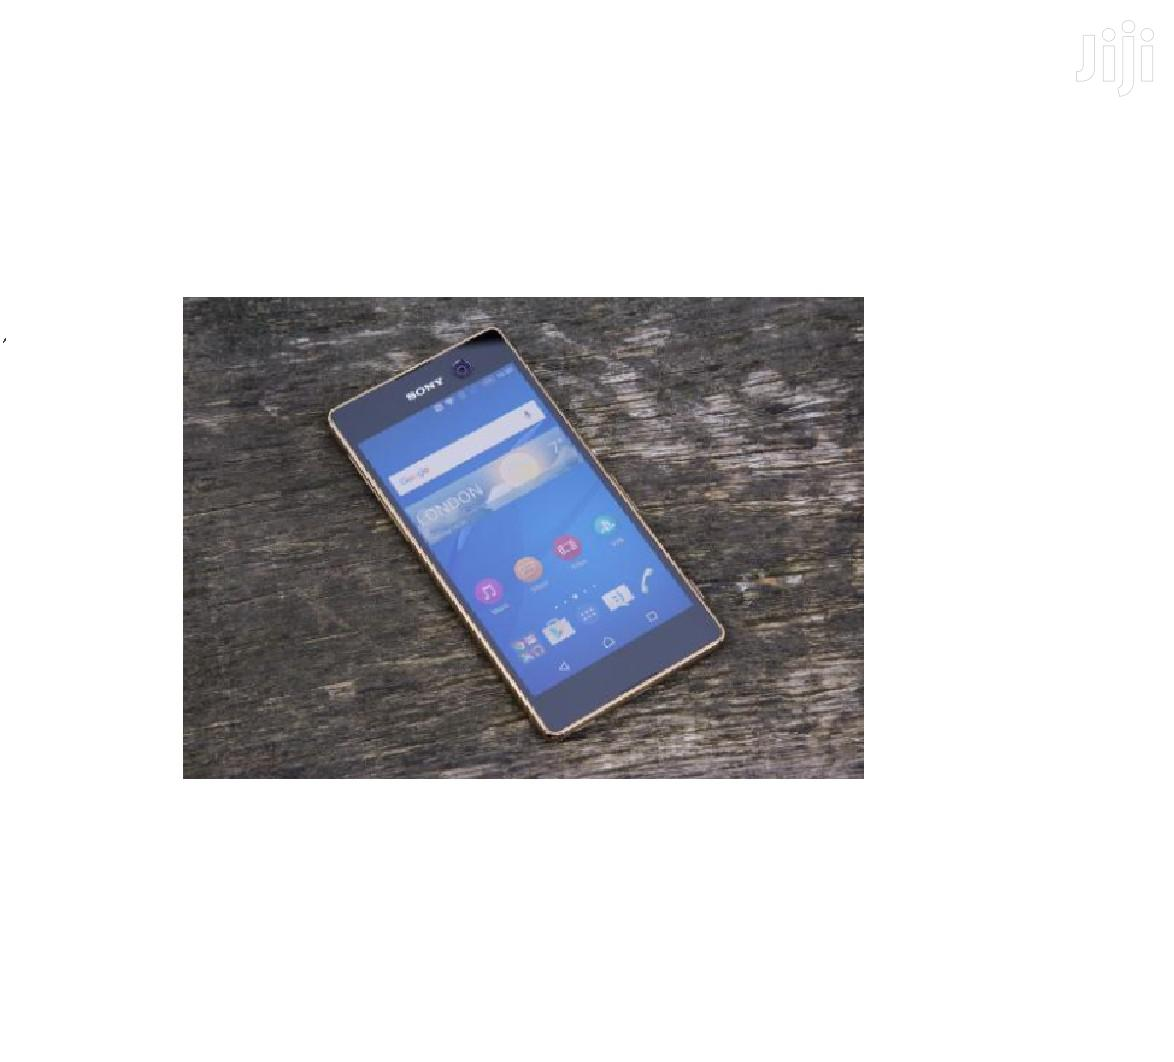 Sony Xperia E5 16 GB Black | Mobile Phones for sale in Tema Metropolitan, Greater Accra, Ghana